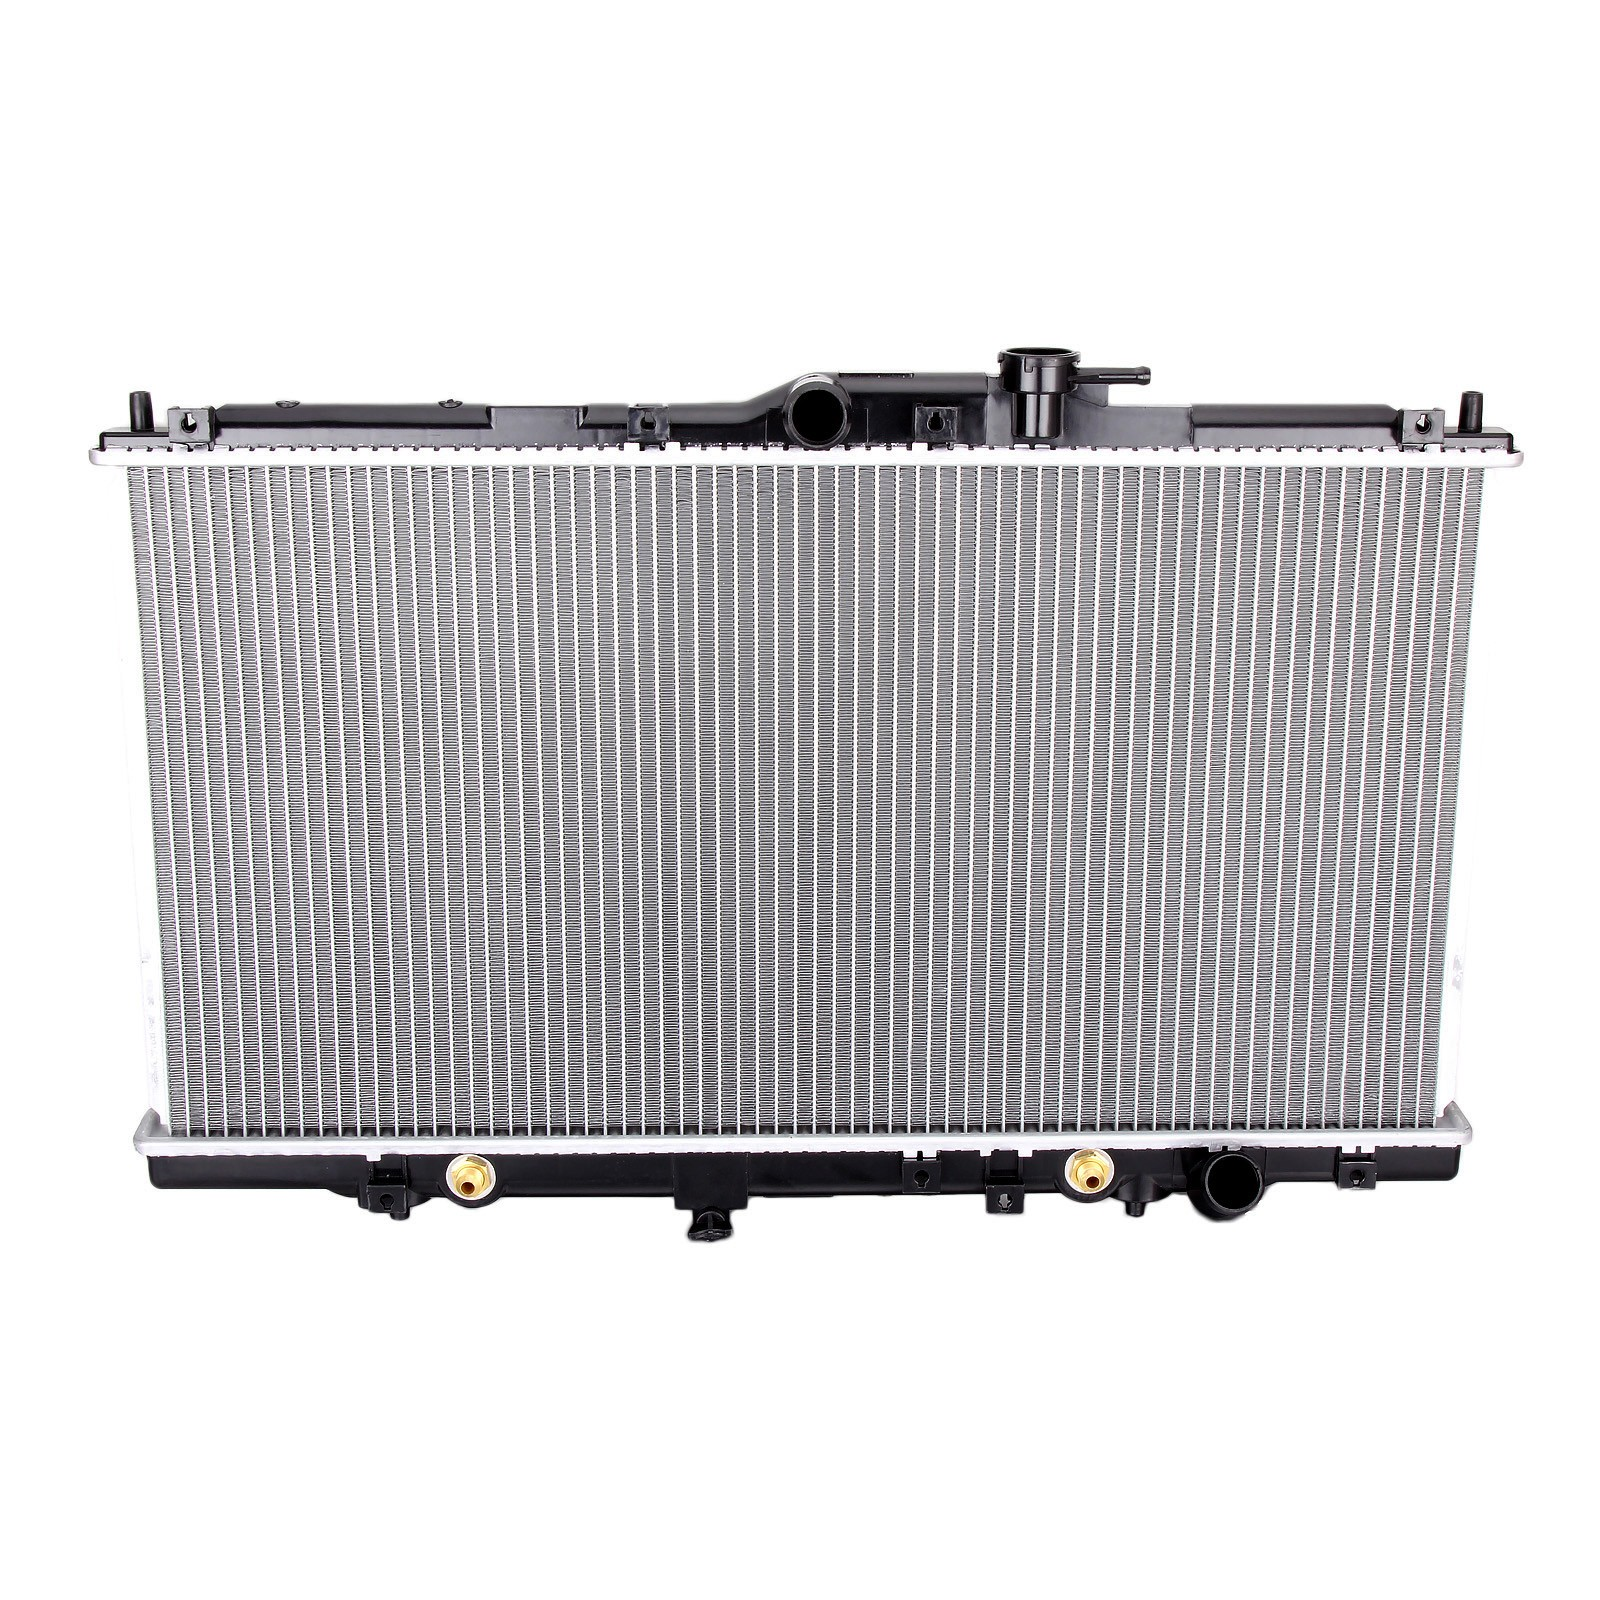 Dromedary-Find 2002 Honda Civic Radiator Honda Civic Aluminum Radiator From Hongdao-1